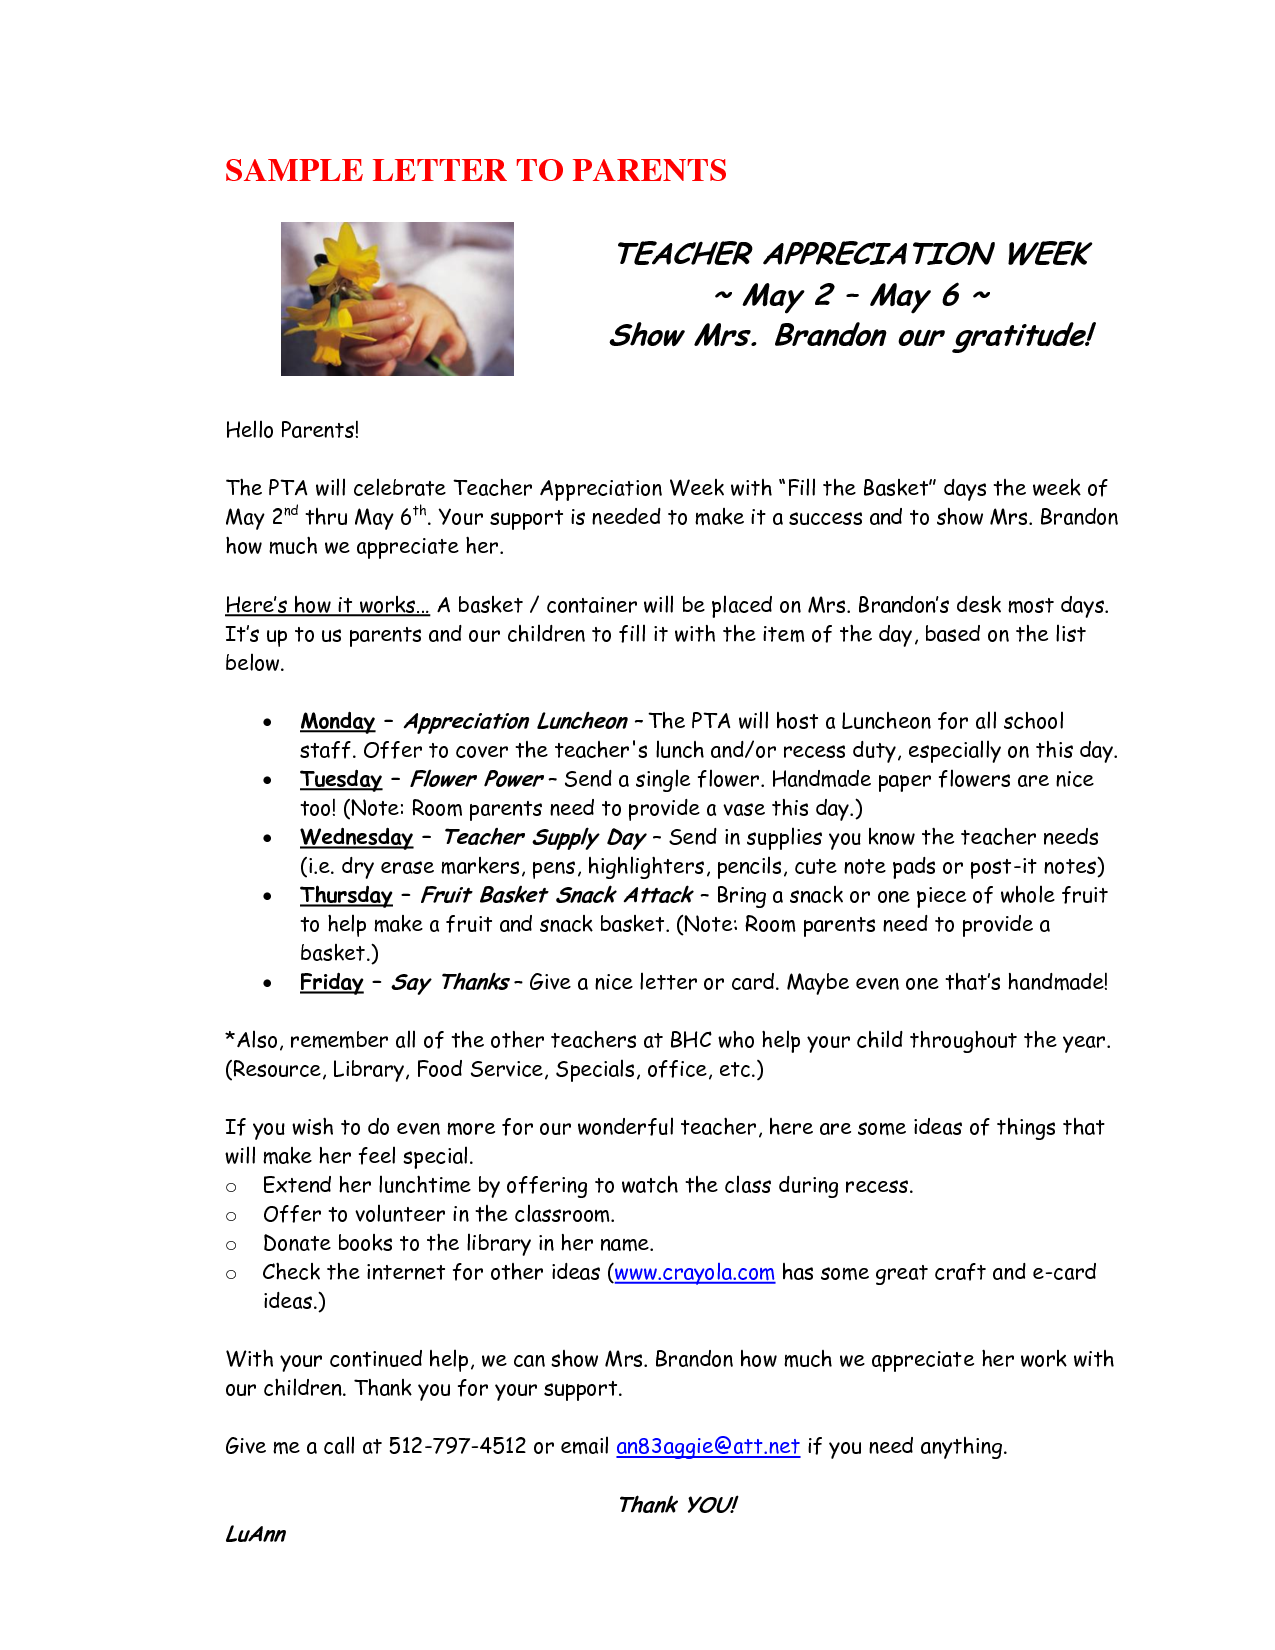 teacher appreciation sample letter